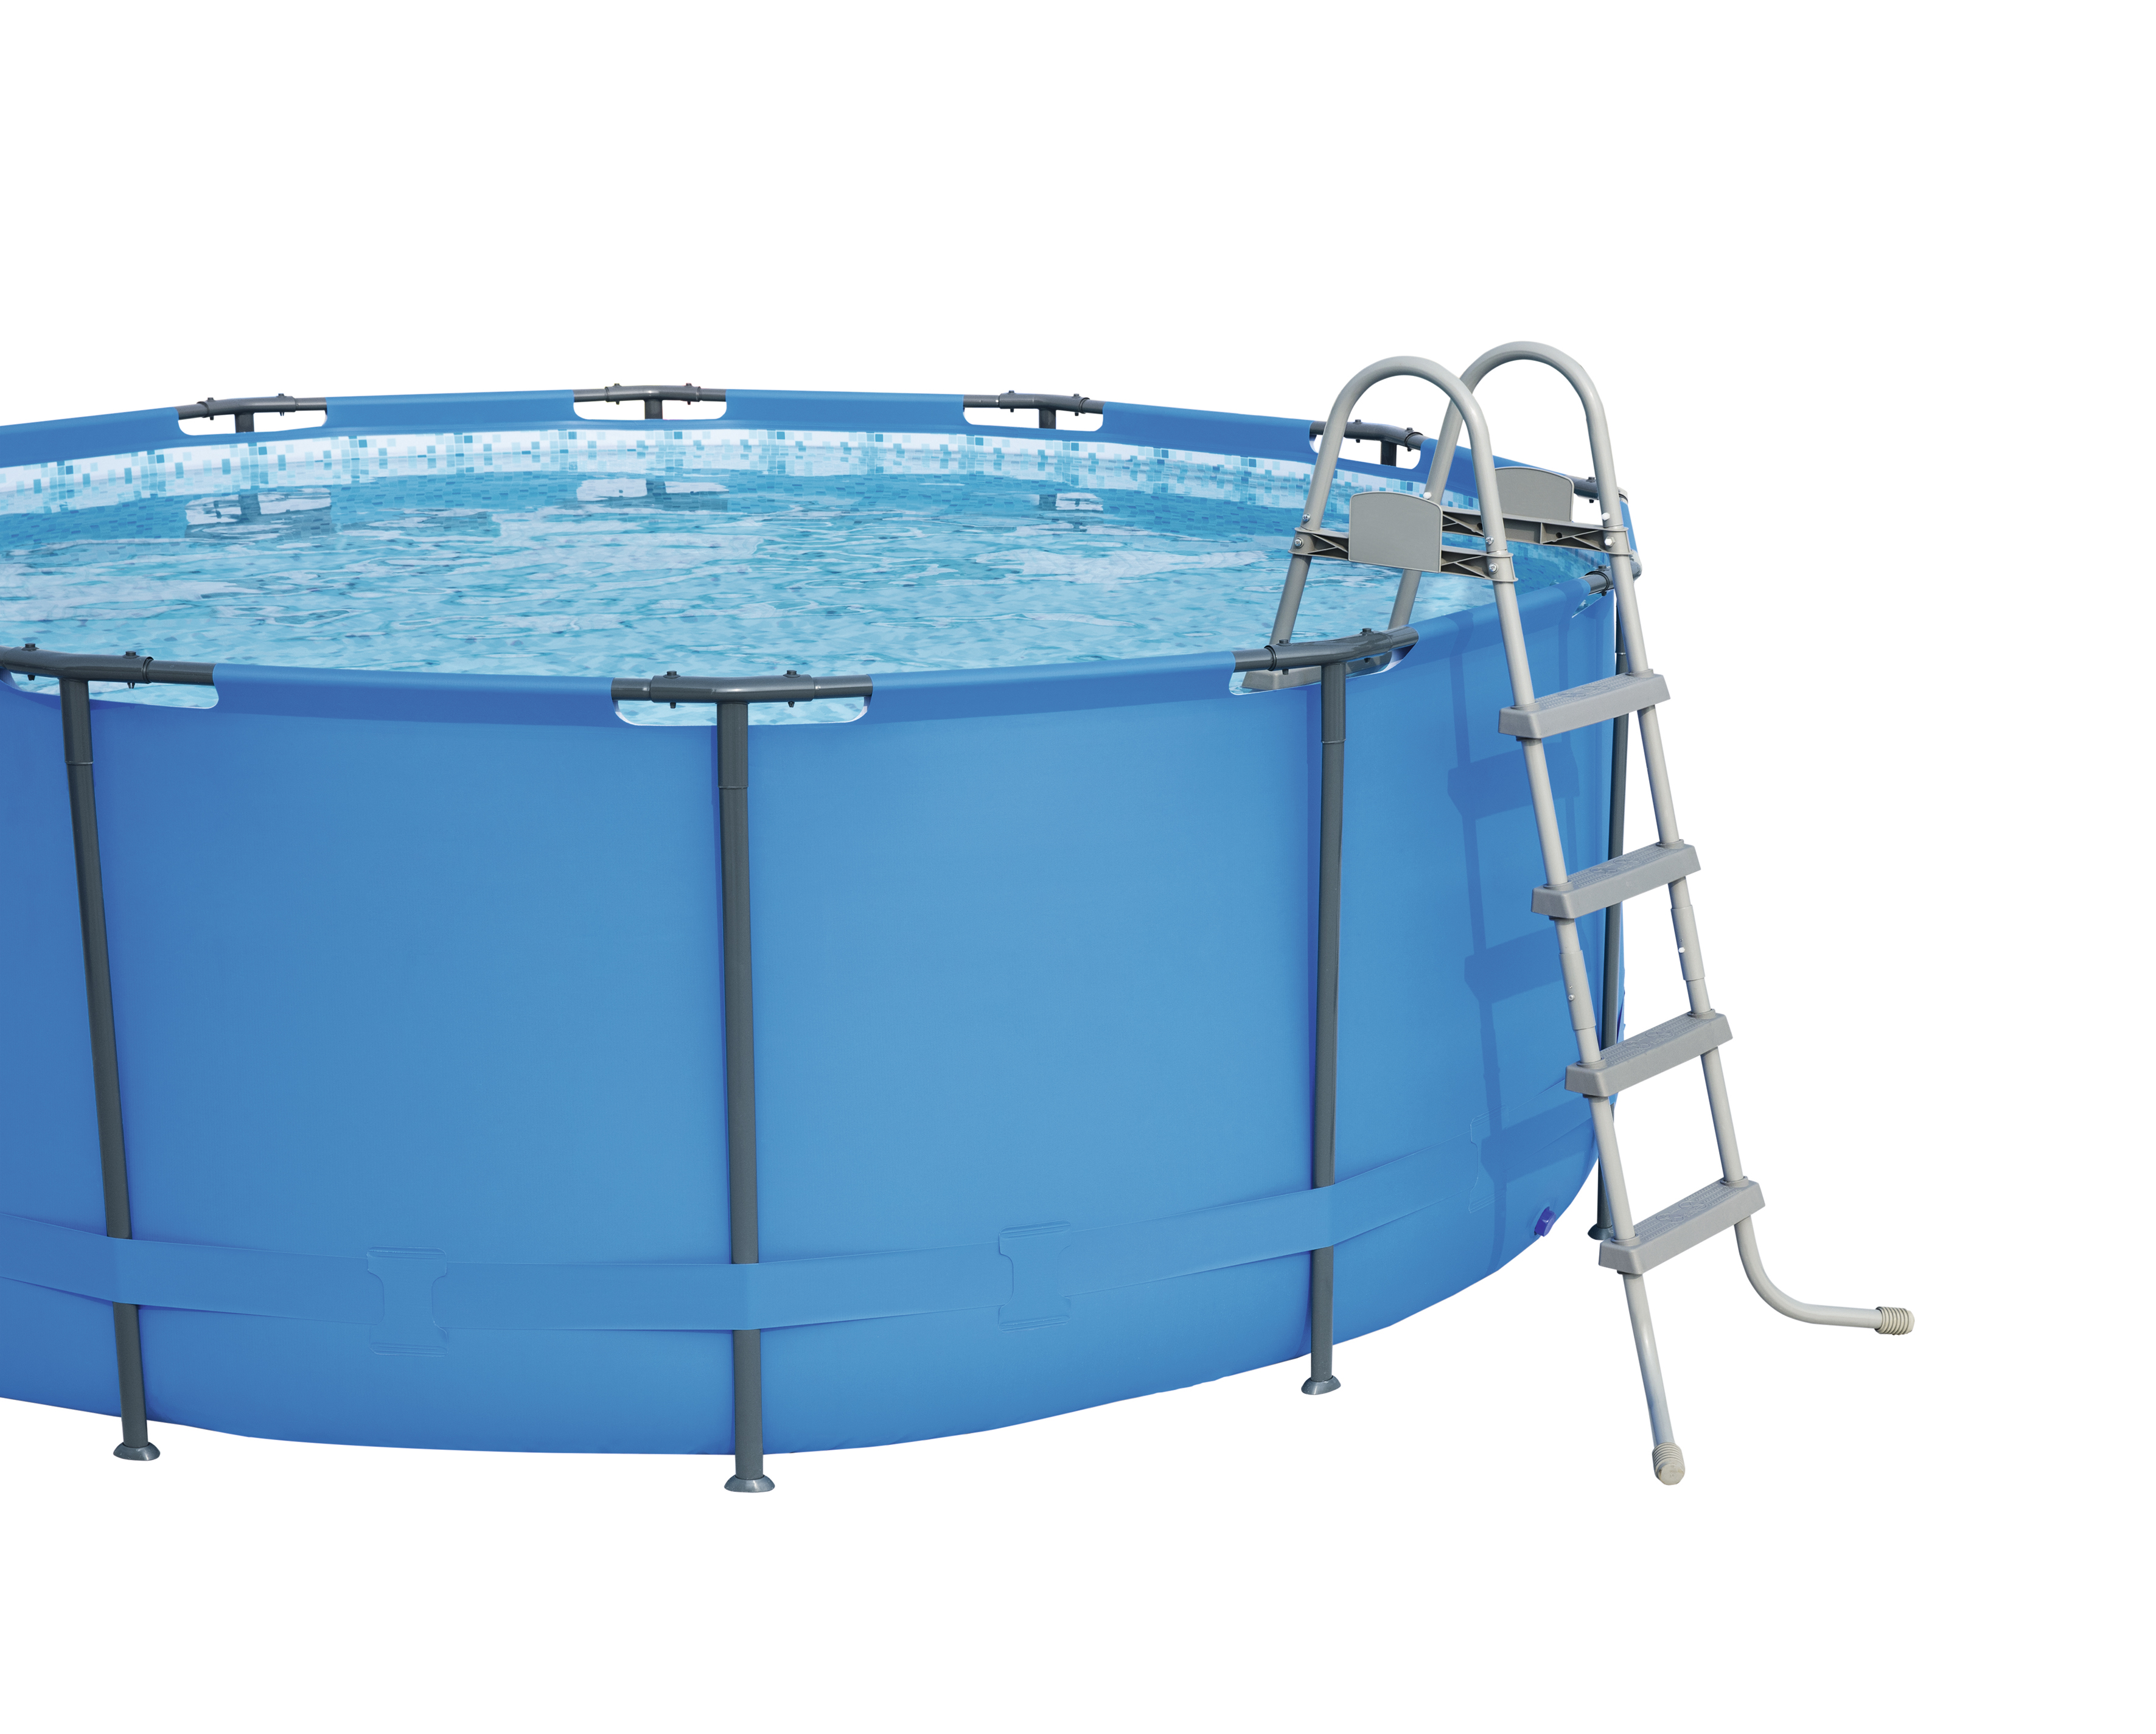 Ladder Pool 122 Cm, Accessory For Swimming Pool, Secure Entrance Into The Pool, Bestway, 58395/58336